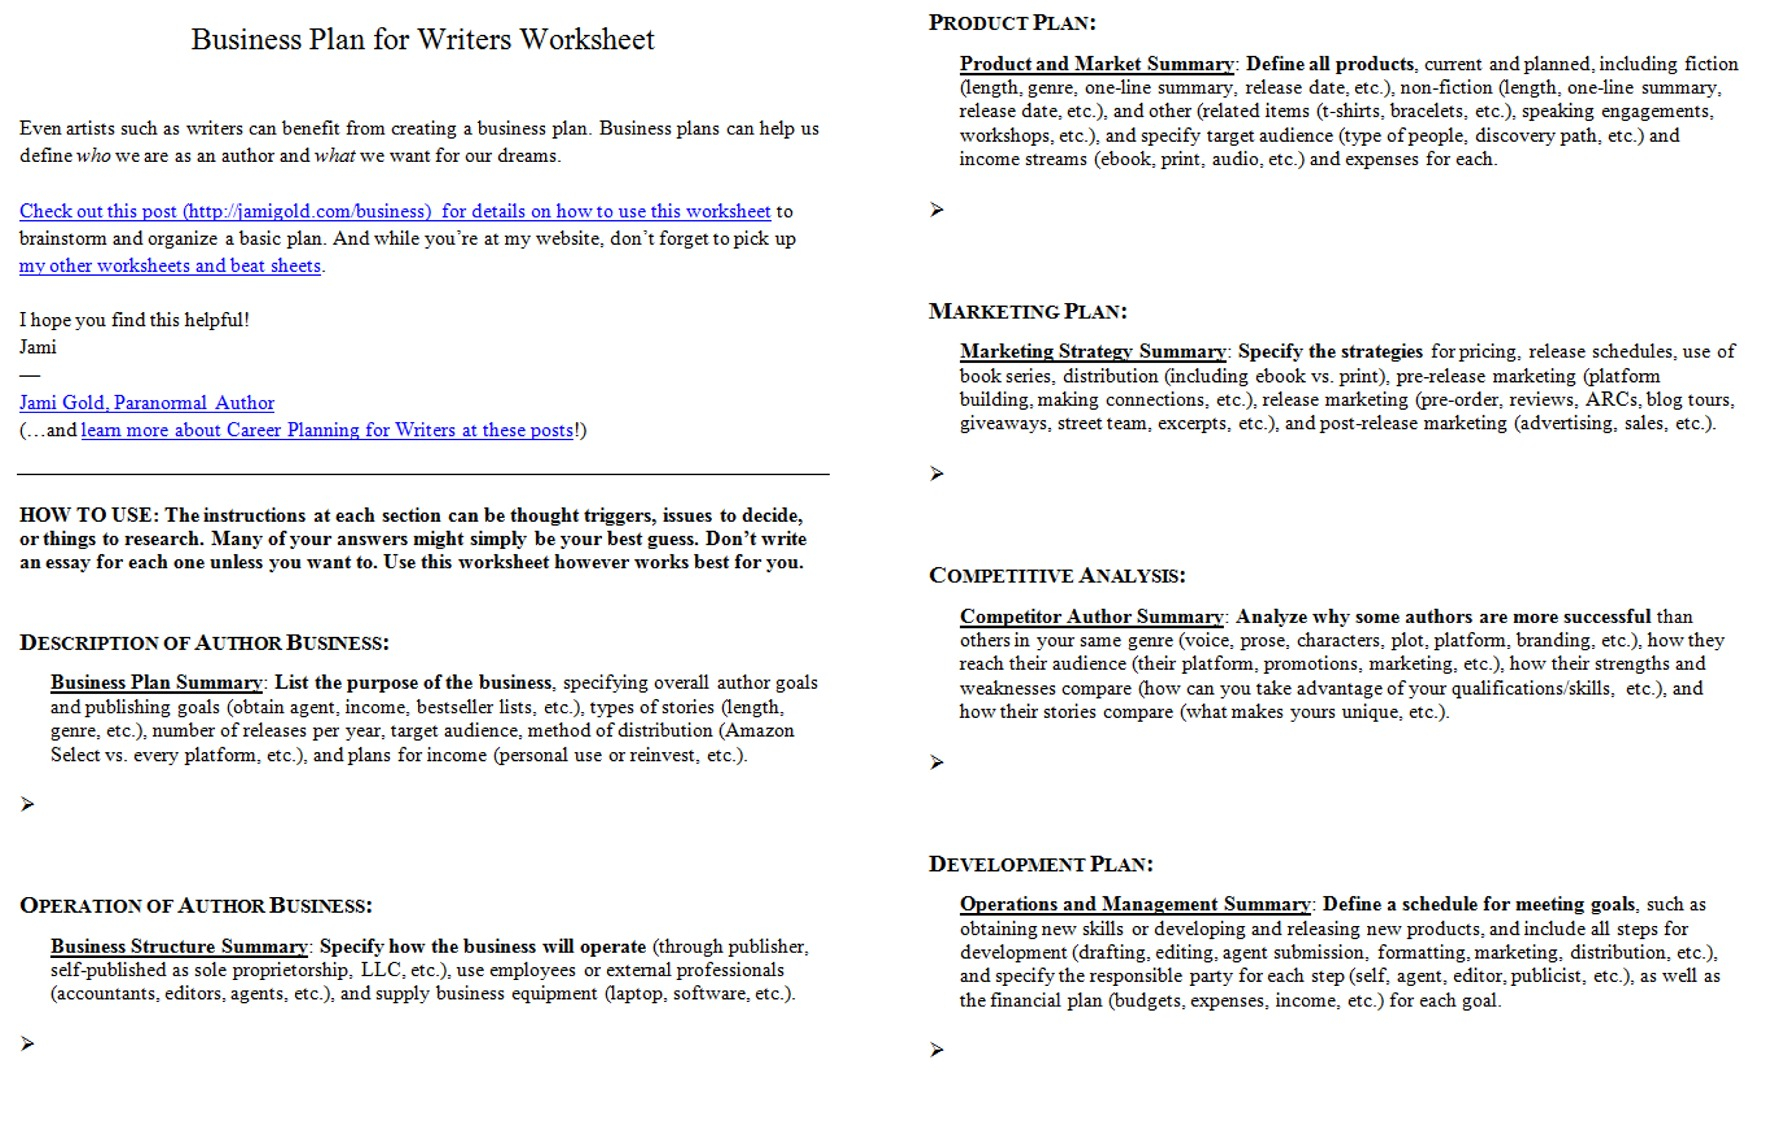 Aldiablosus  Fascinating Worksheets For Writers  Jami Gold Paranormal Author With Lovable Screen Shot Of Both Pages Of The Business Plan For Writers Worksheet With Comely Summarization Worksheets Also Maths Worksheets Angles In Addition Standard English Worksheet And Free Graphs Worksheets As Well As Conjunction Worksheets For Grade  Additionally Simple Volume Worksheets From Jamigoldcom With Aldiablosus  Lovable Worksheets For Writers  Jami Gold Paranormal Author With Comely Screen Shot Of Both Pages Of The Business Plan For Writers Worksheet And Fascinating Summarization Worksheets Also Maths Worksheets Angles In Addition Standard English Worksheet From Jamigoldcom